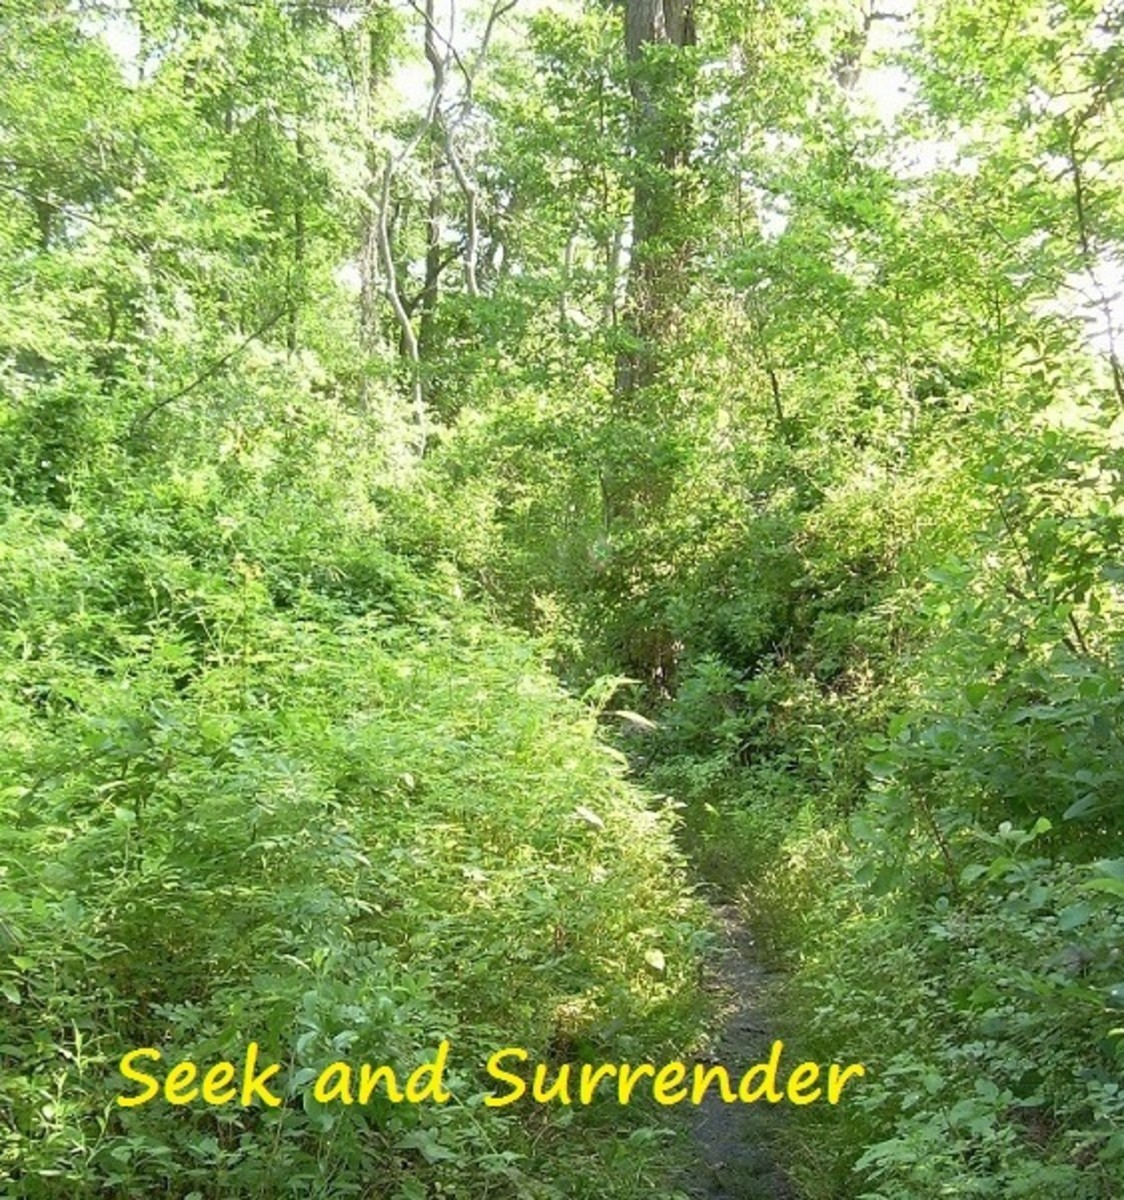 seek-and-surrender